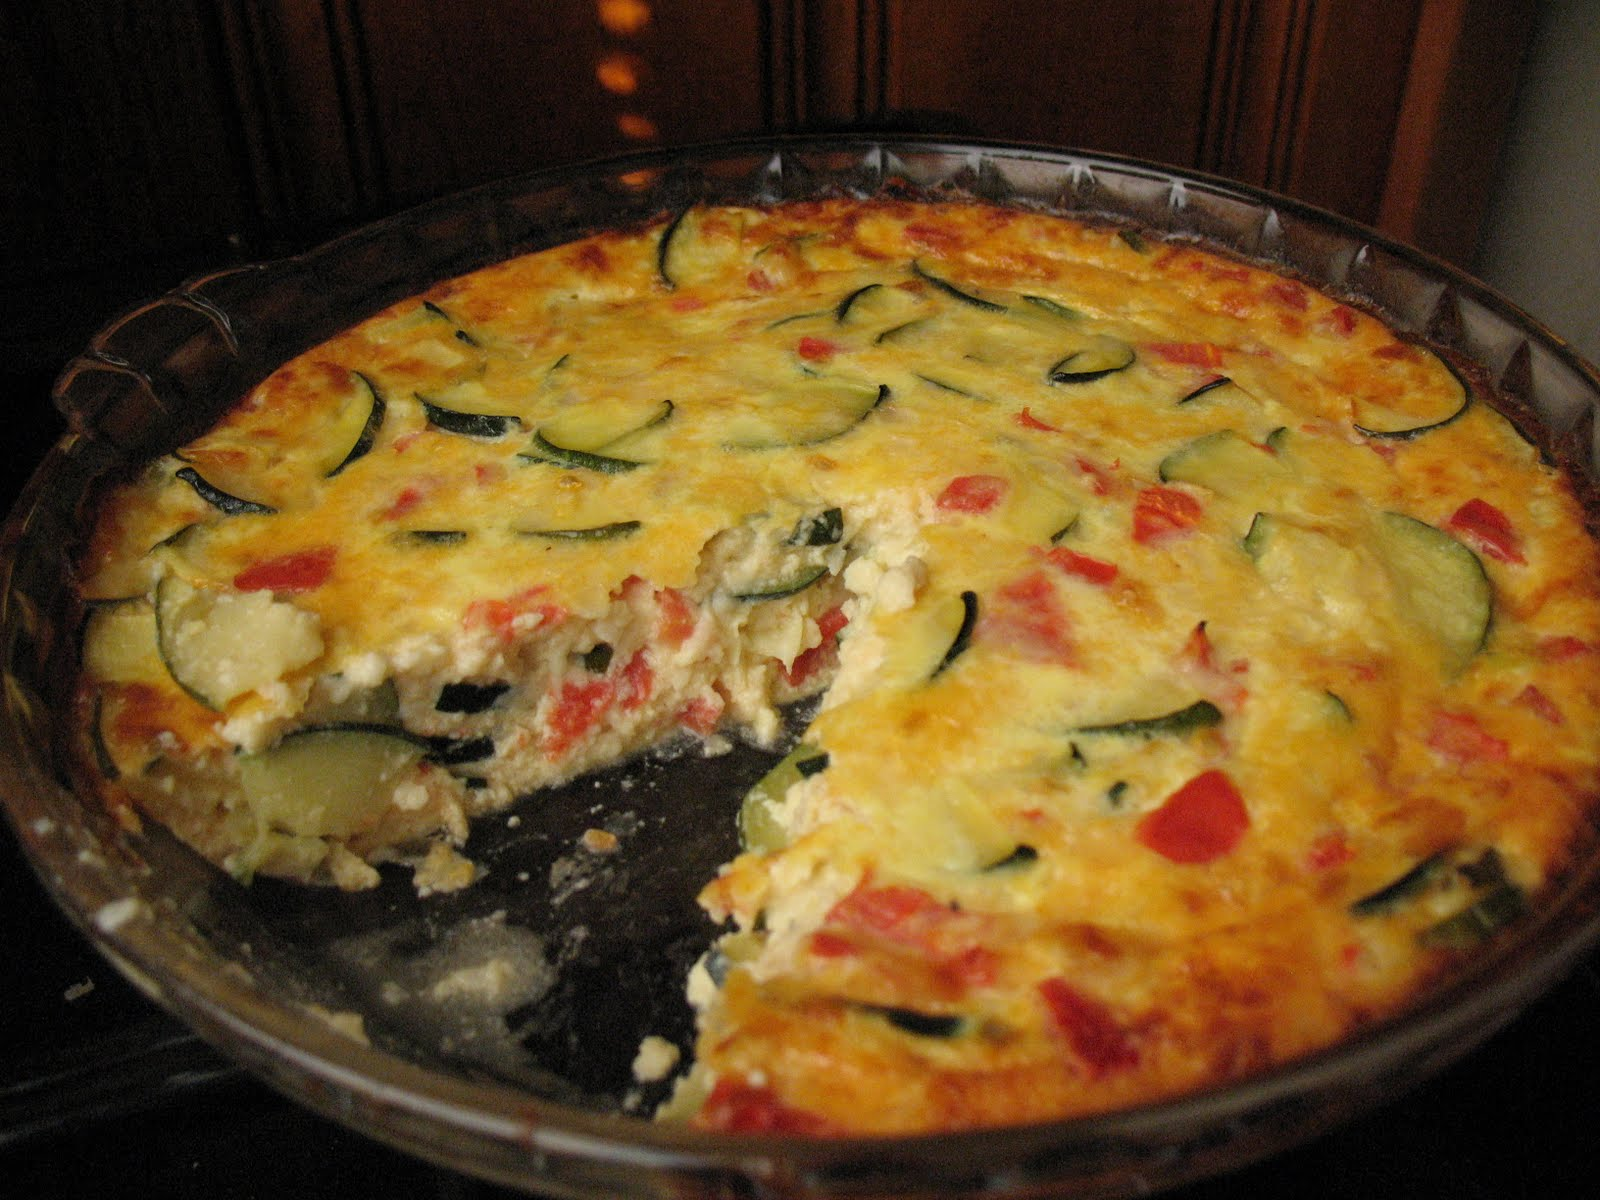 Sherry Starts Cooking: Zucchini and Tomato (Crustless) Quiche